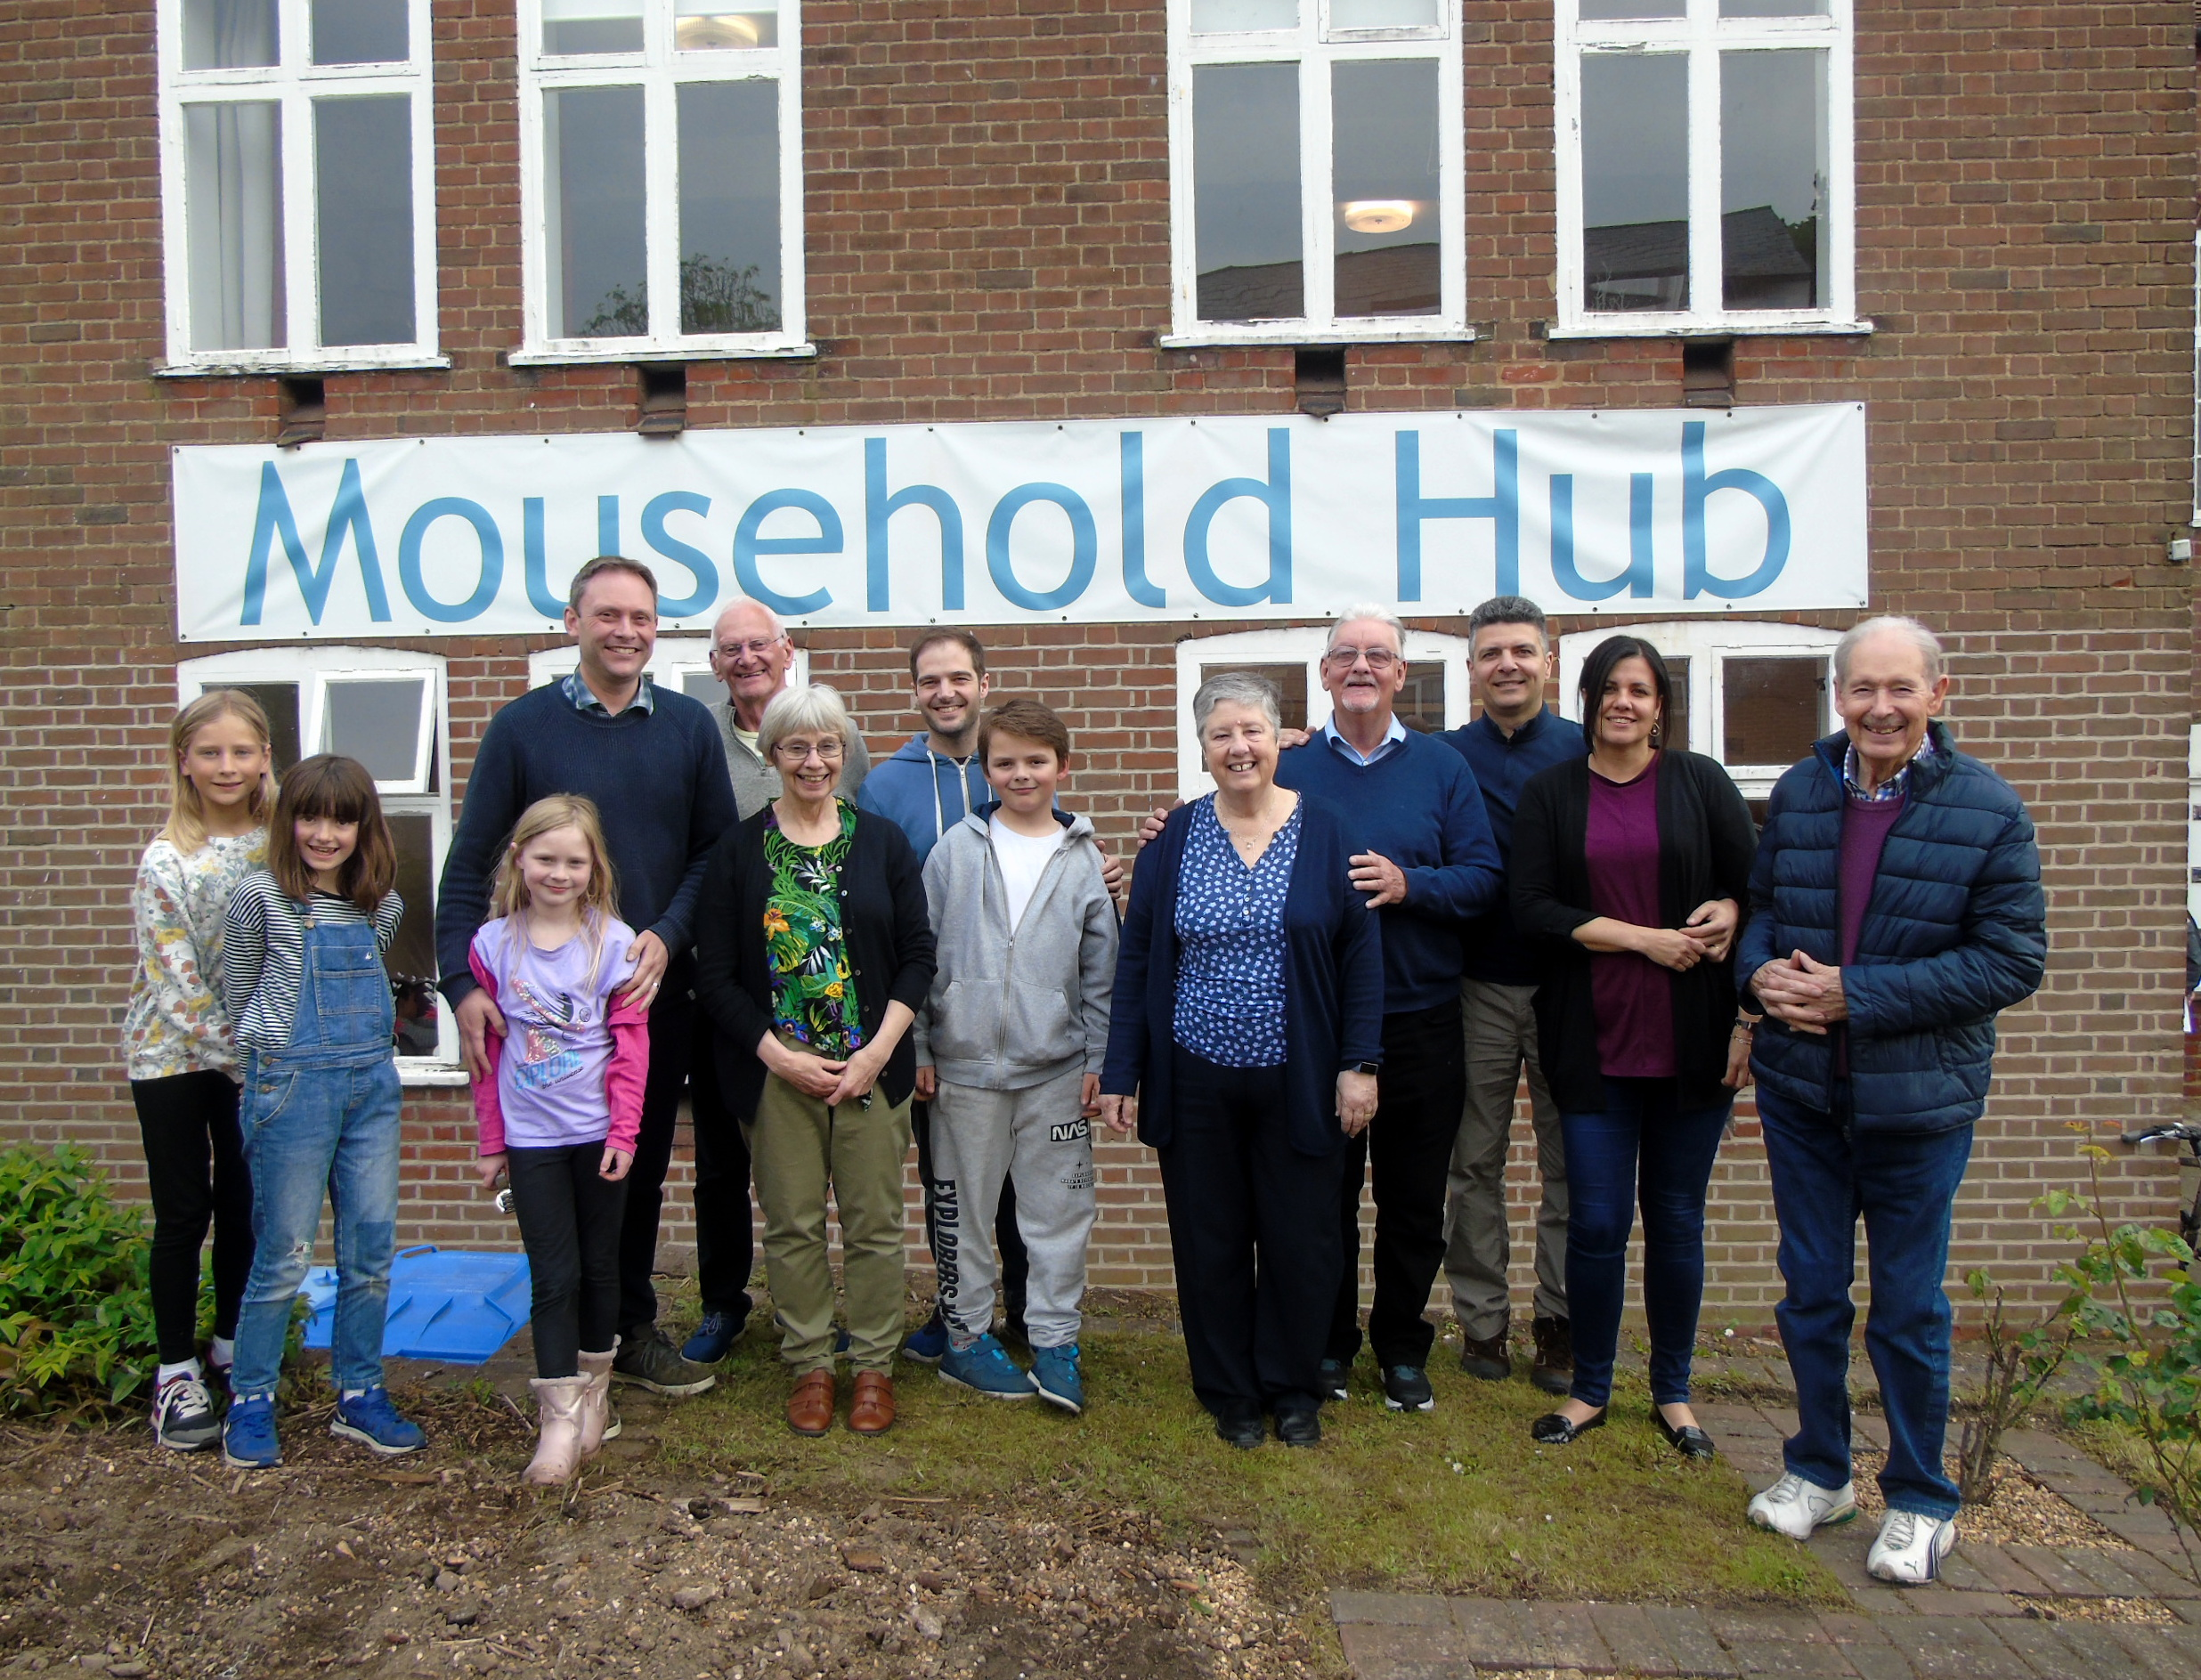 Mousehold Hub group